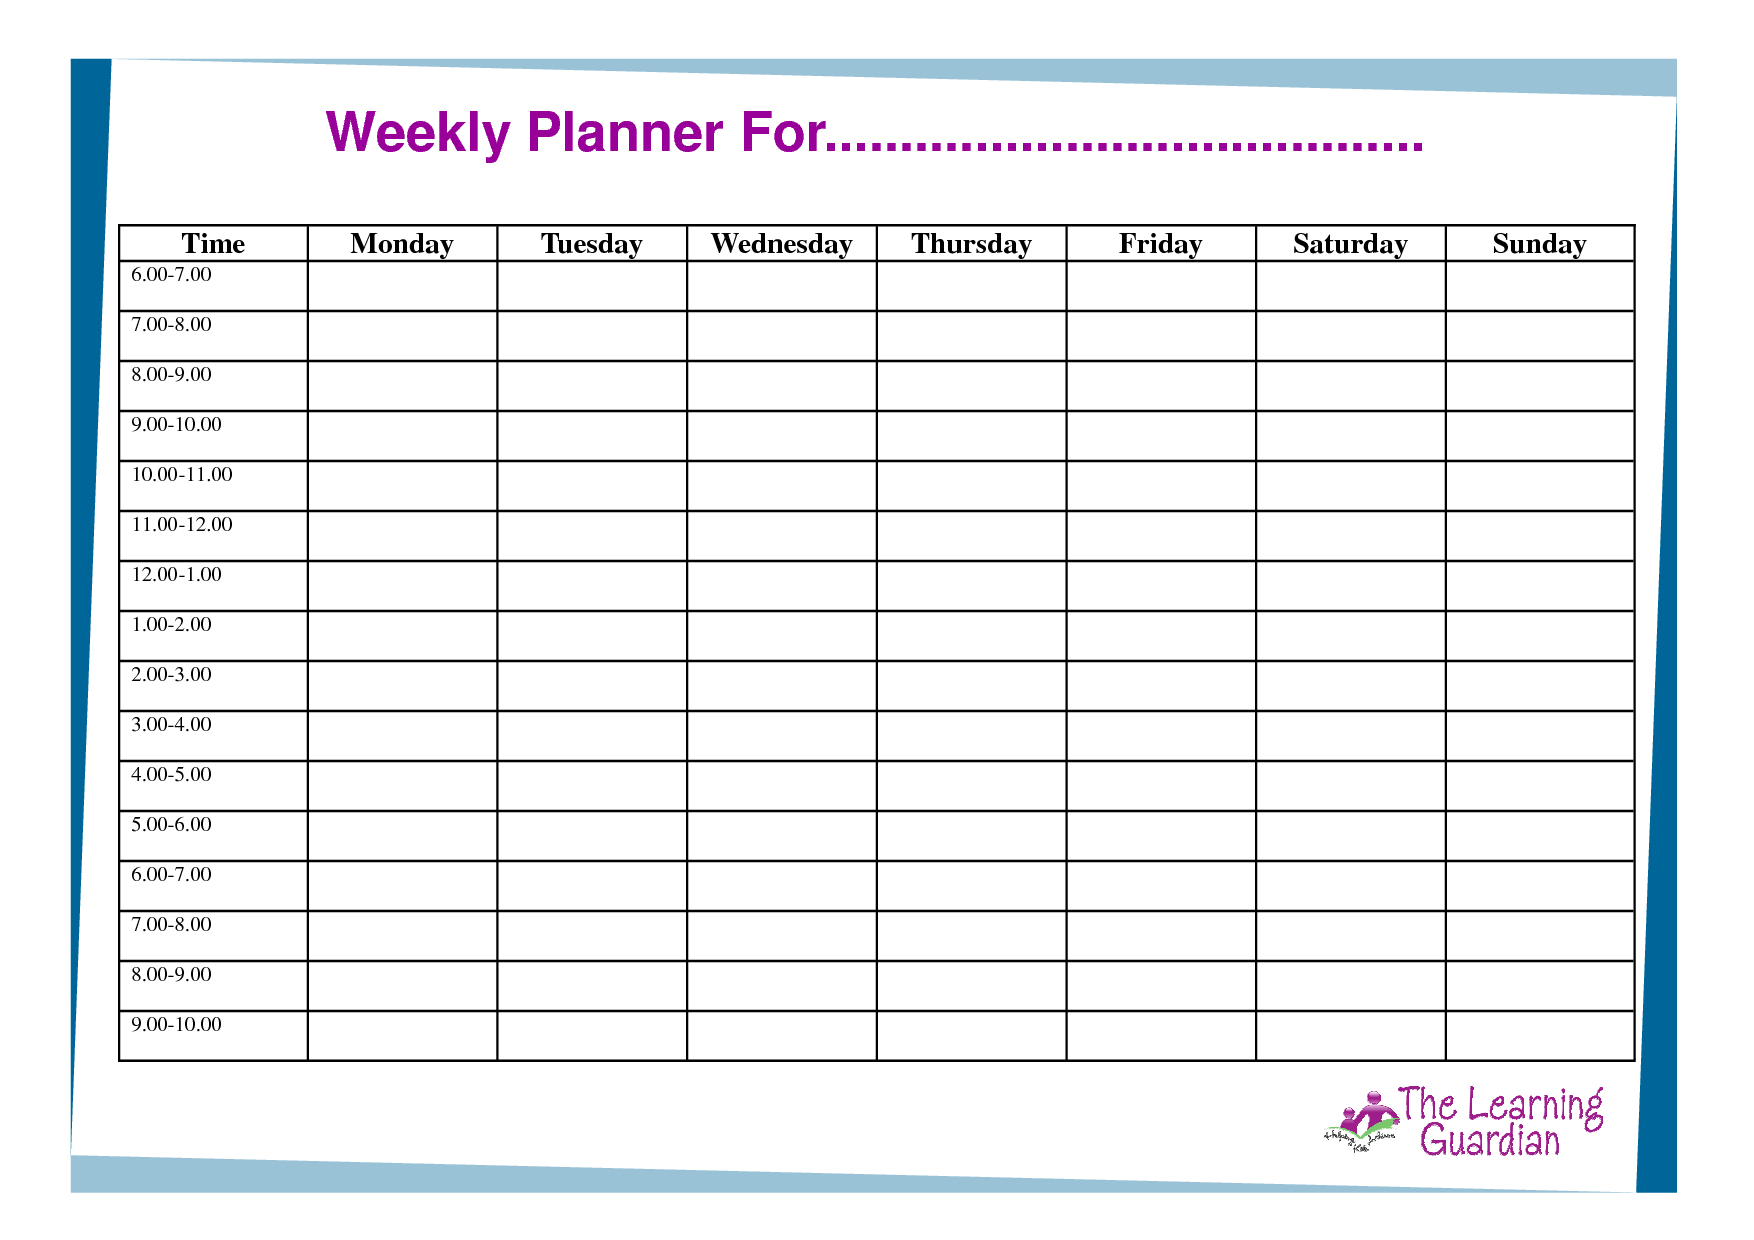 Free Printable Weekly Calendar Templates | Weekly Planner intended for Monday To Friday Planner